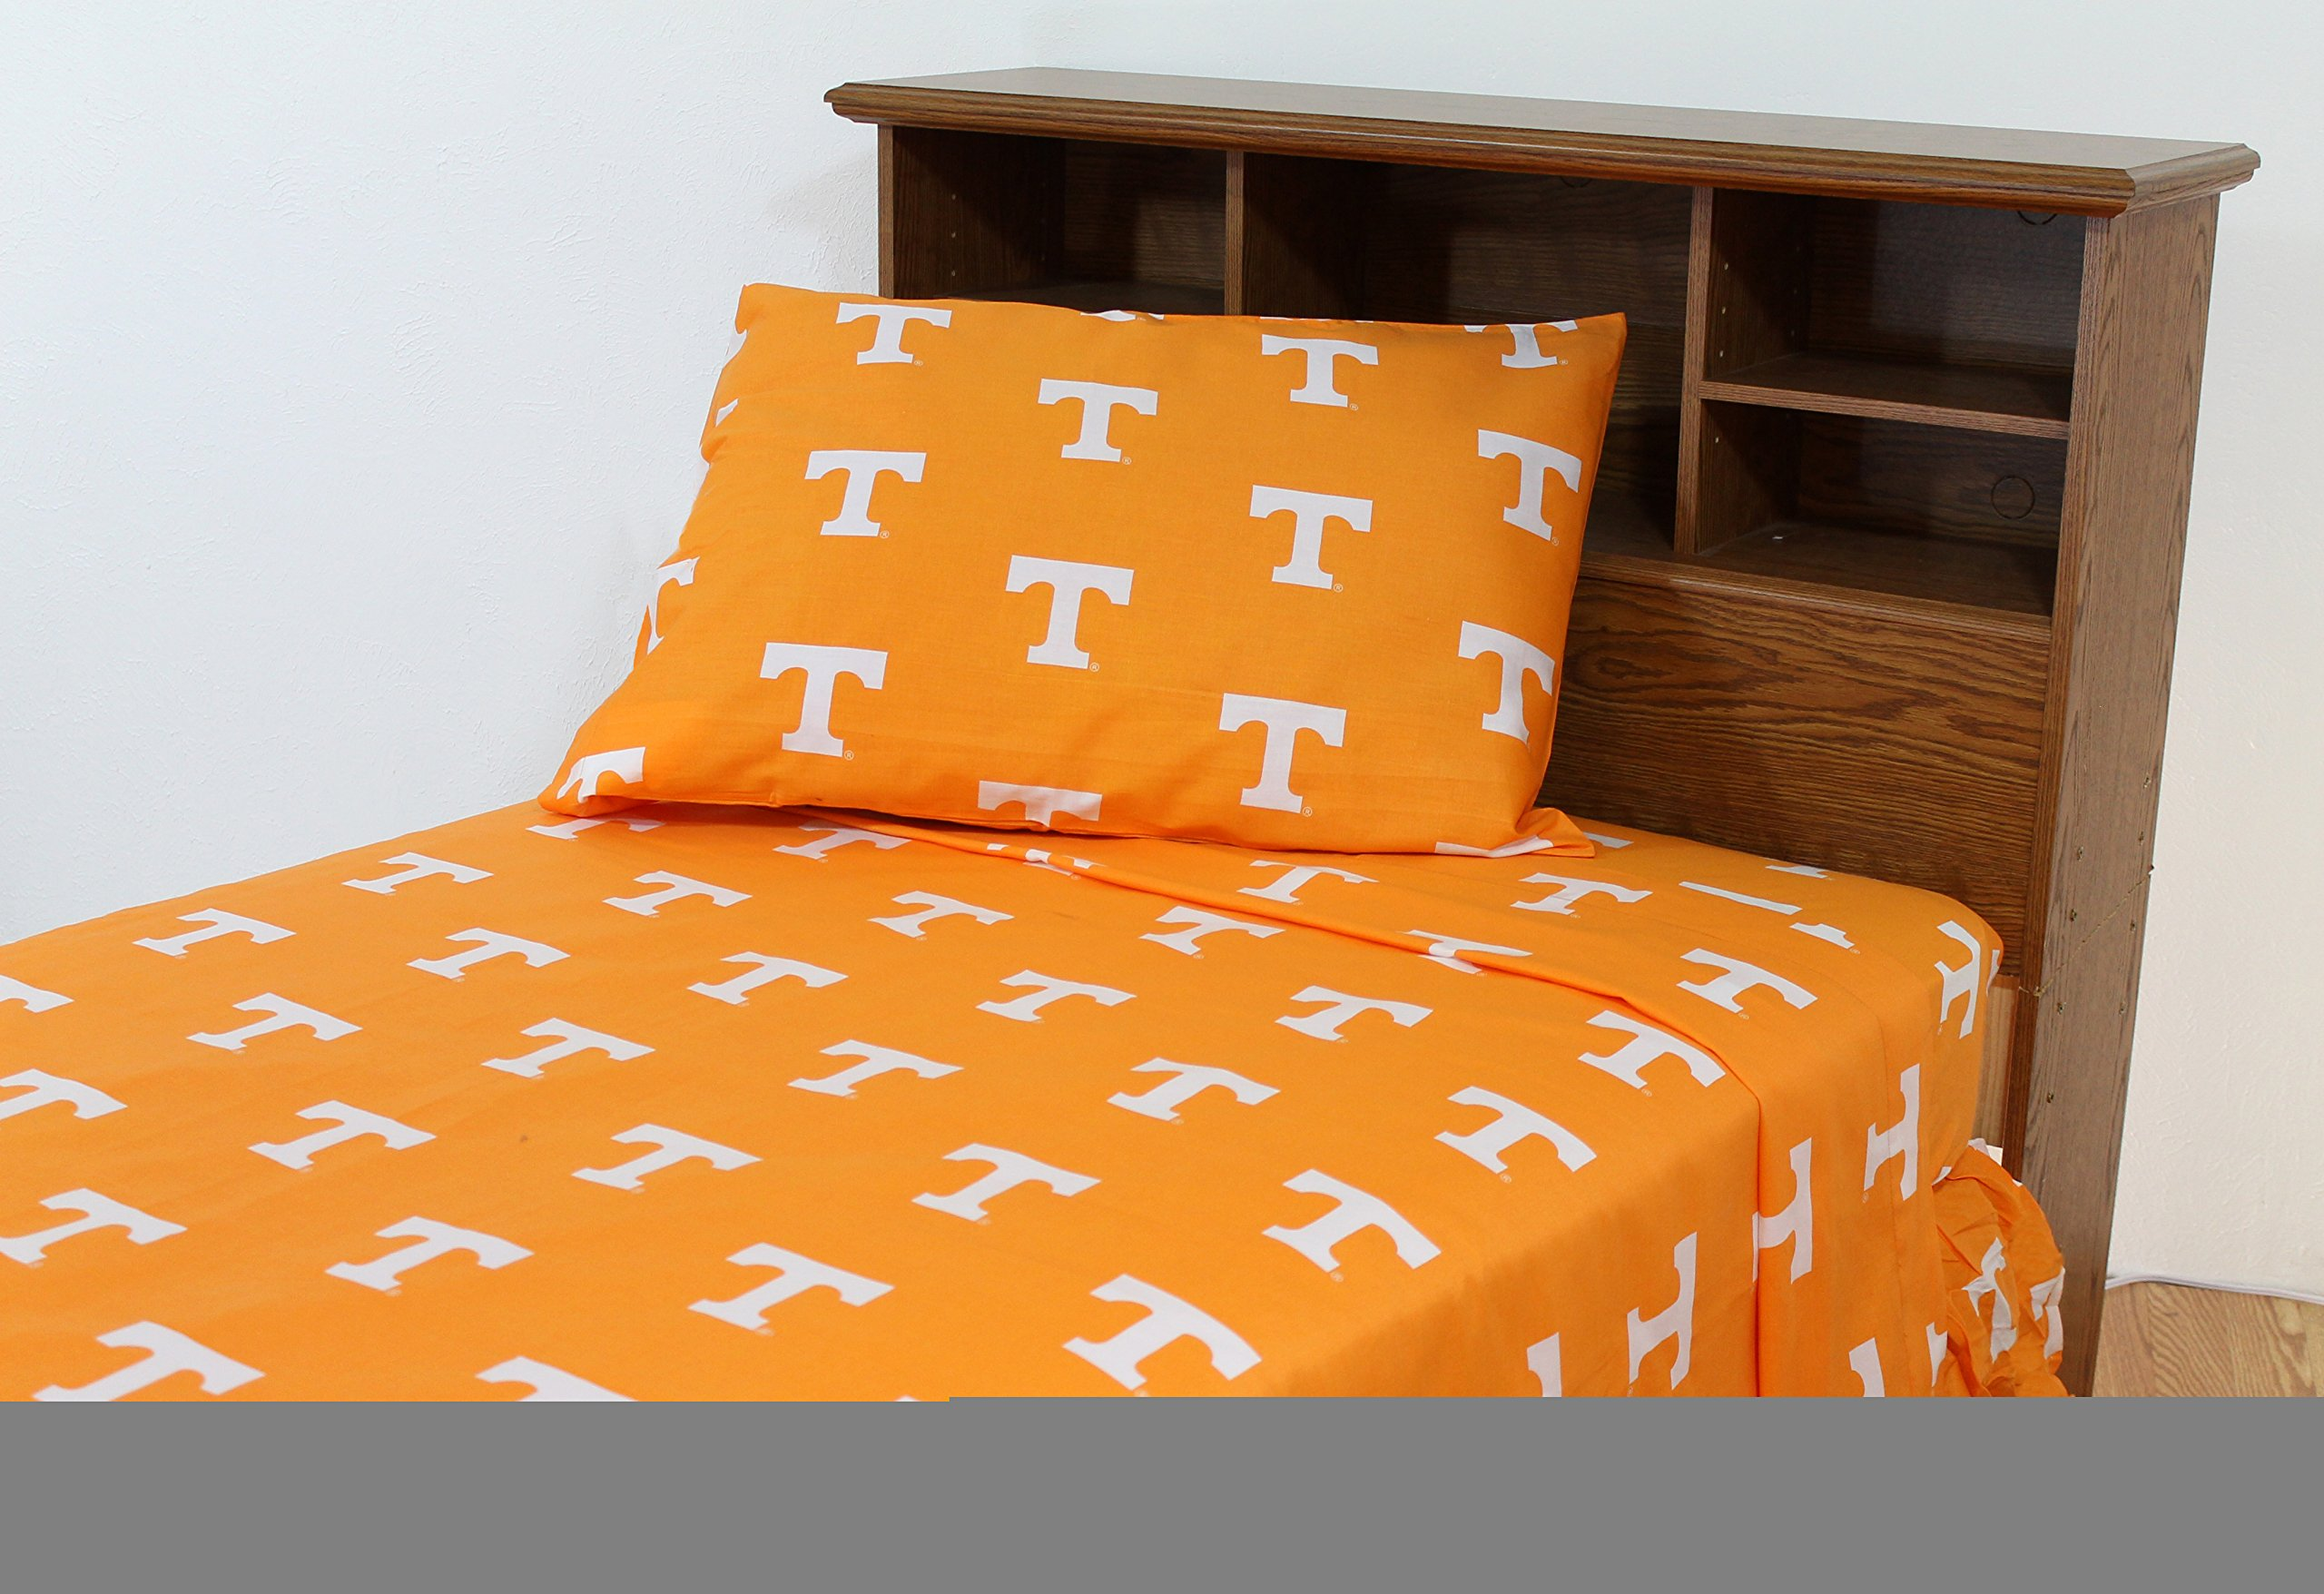 Tennessee Printed Sheet Set King - Solid by College Covers by College Covers